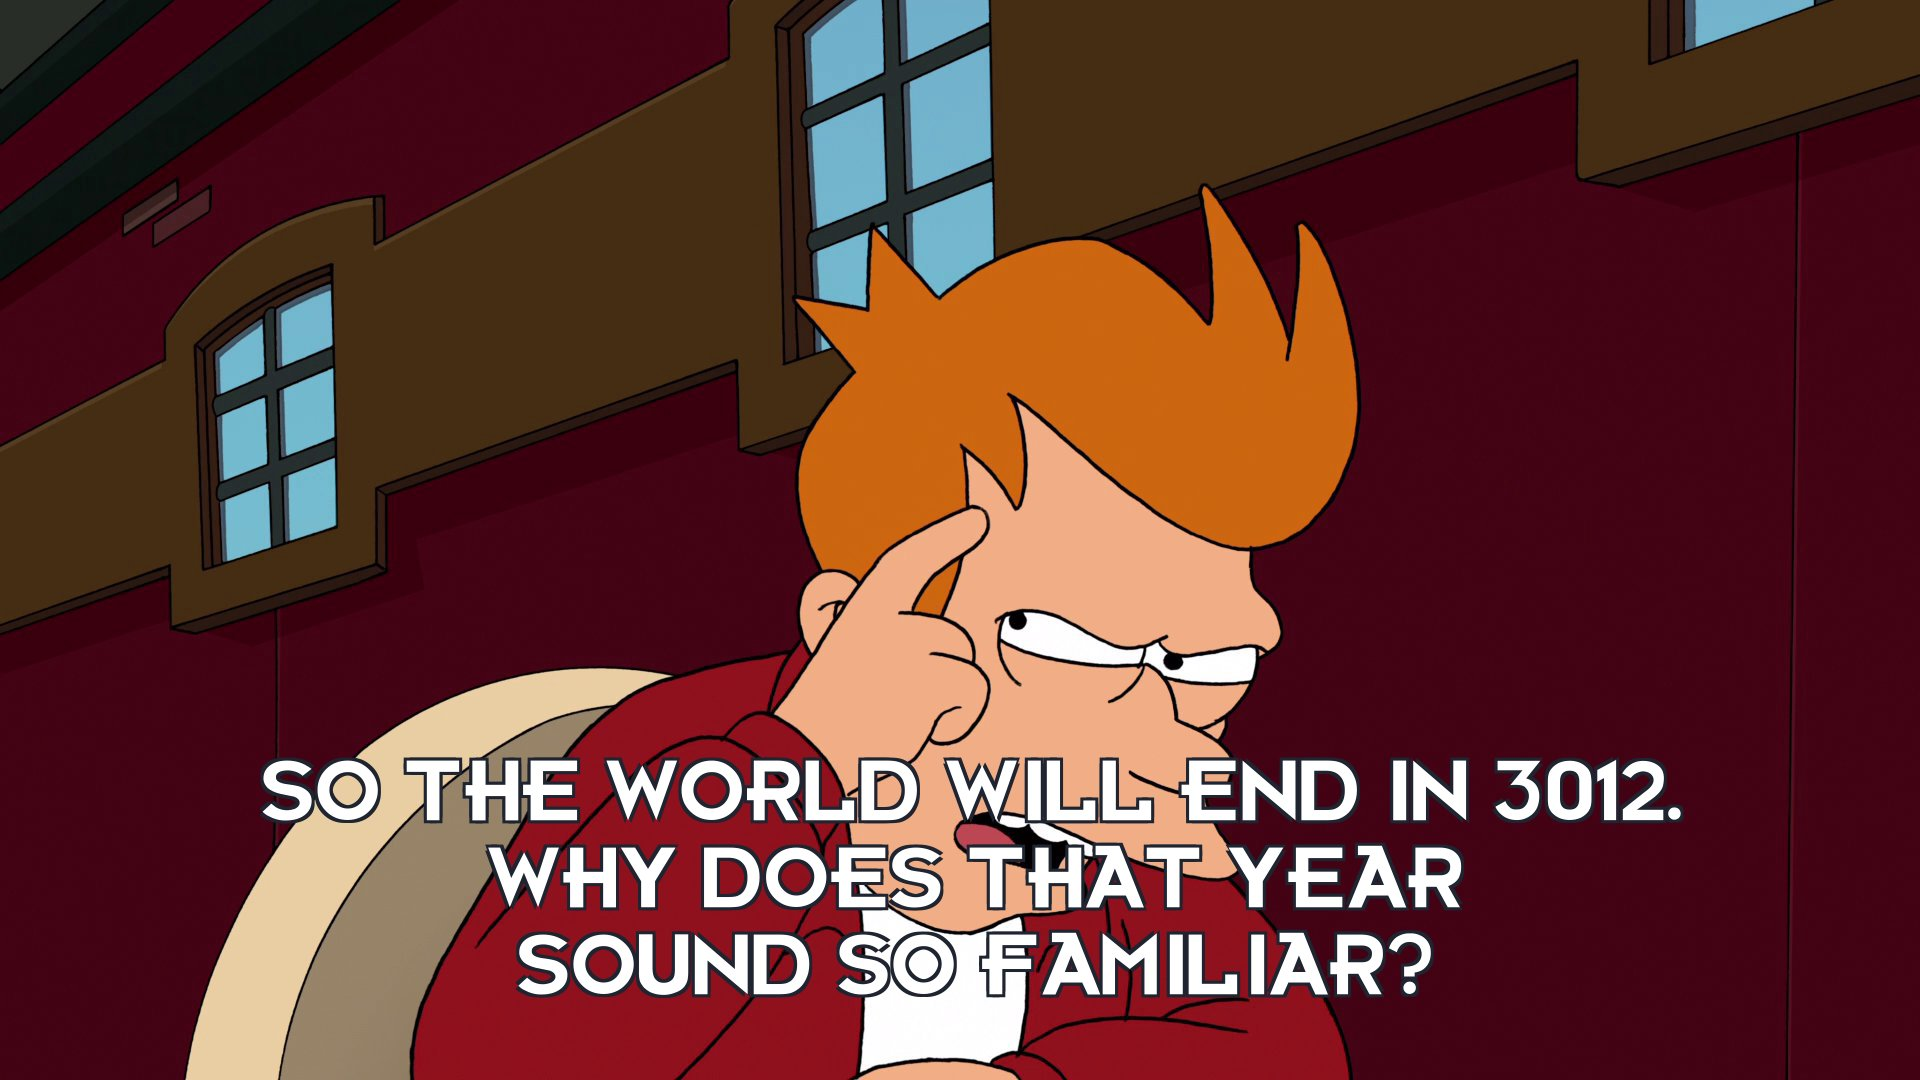 Philip J Fry: So the world will end in 3012. Why does that year sound so familiar?